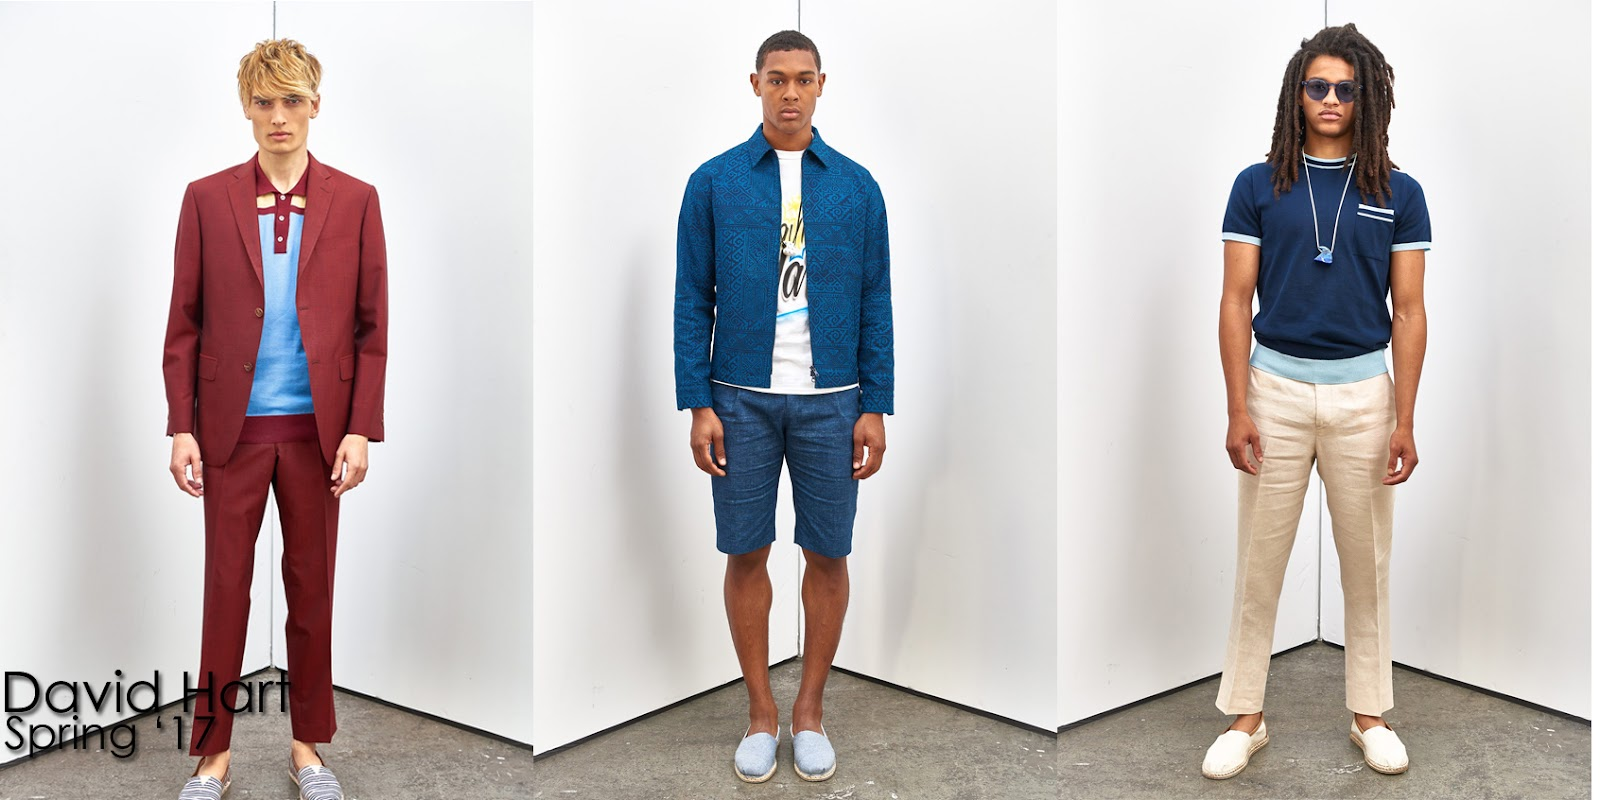 Inspection Report: David Hart Spring 2017 Menswear